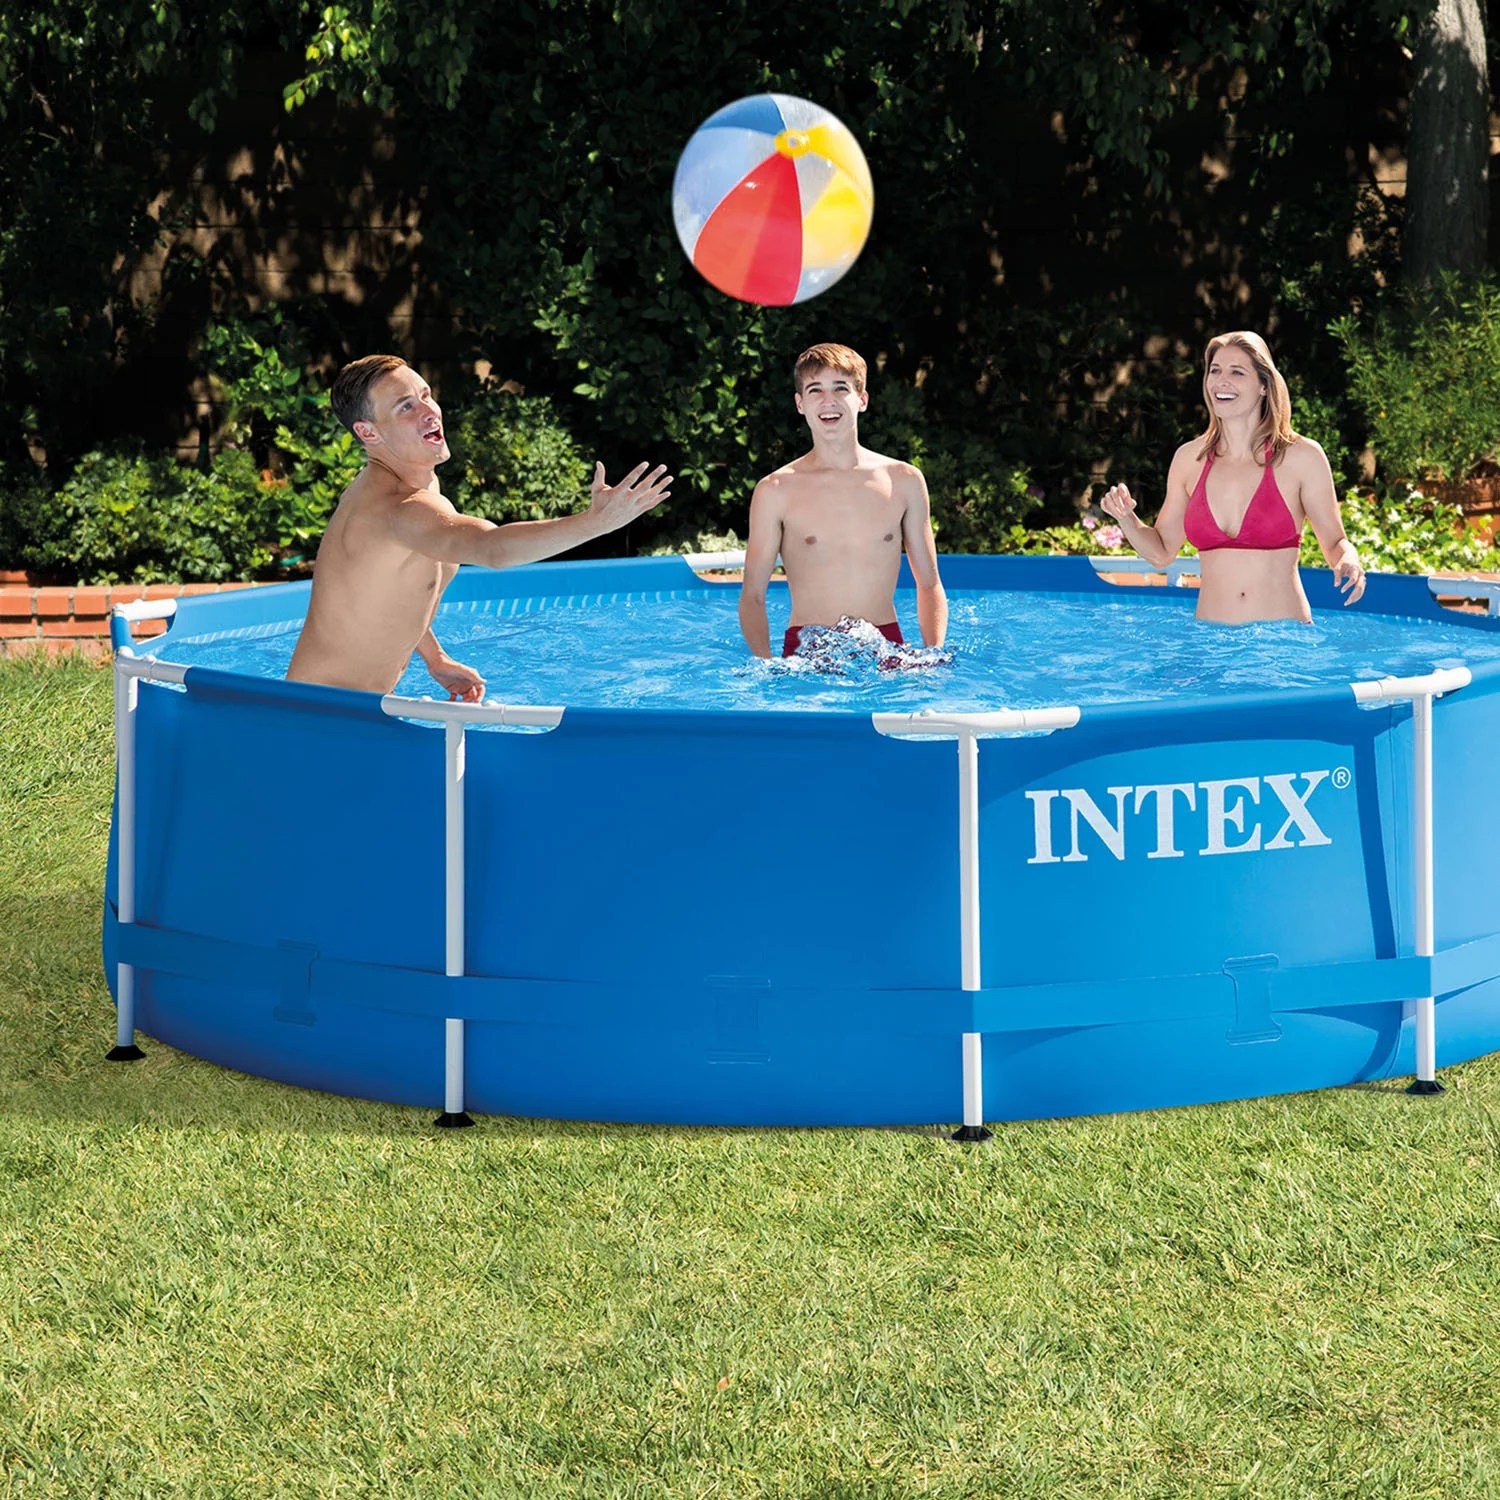 Aldi Intex Pool Intex 10 X 30